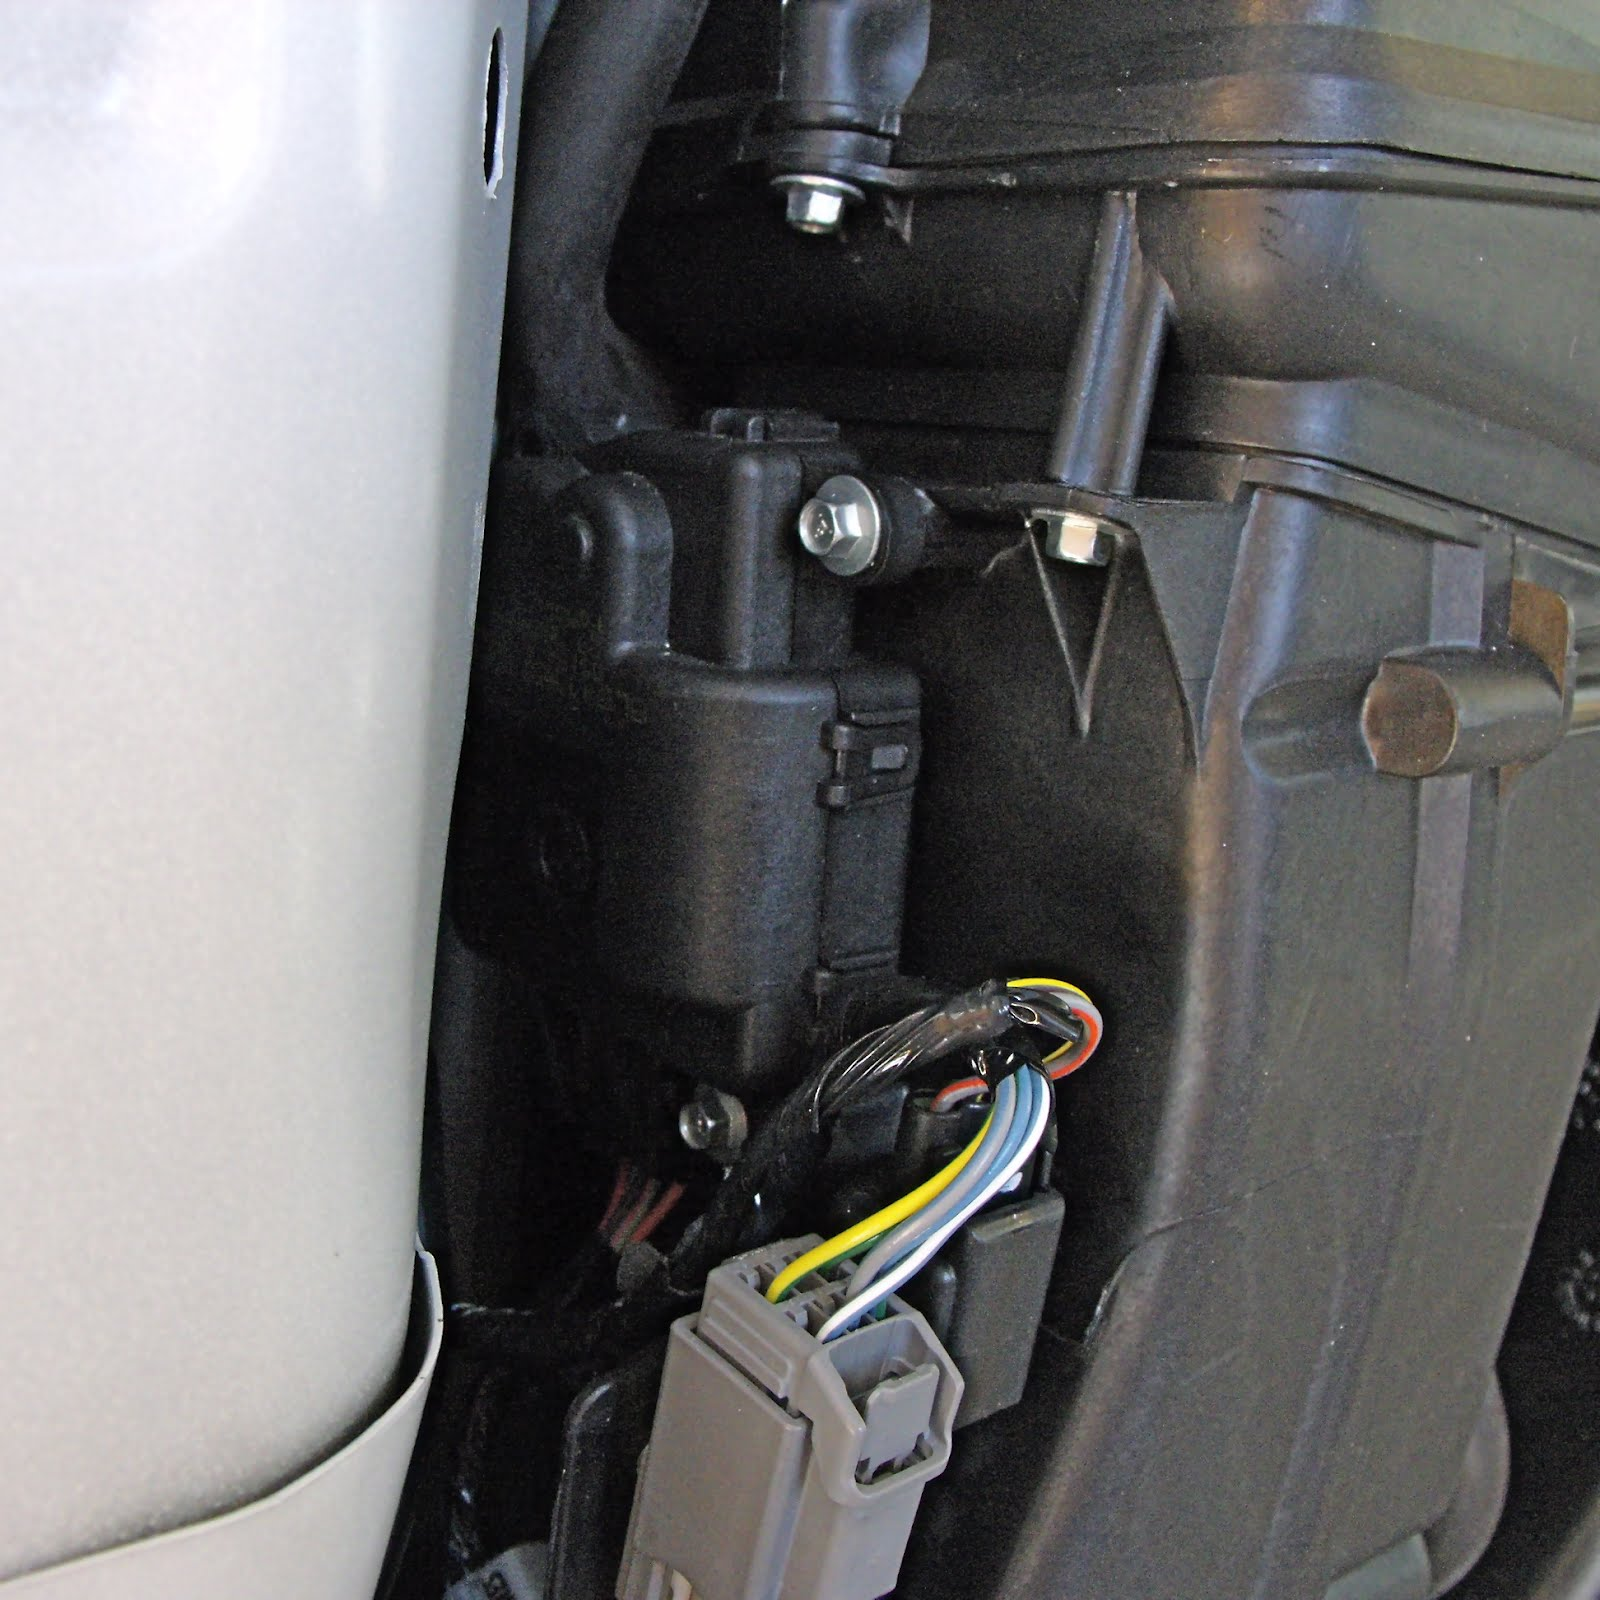 Jacks 2008 hybrid escape blog the dreaded yellow wrench the hybrid escape has a battery pack in the rear of the car that gets warm with use to keep it cool there is a special ac system fitted in the left buycottarizona Choice Image